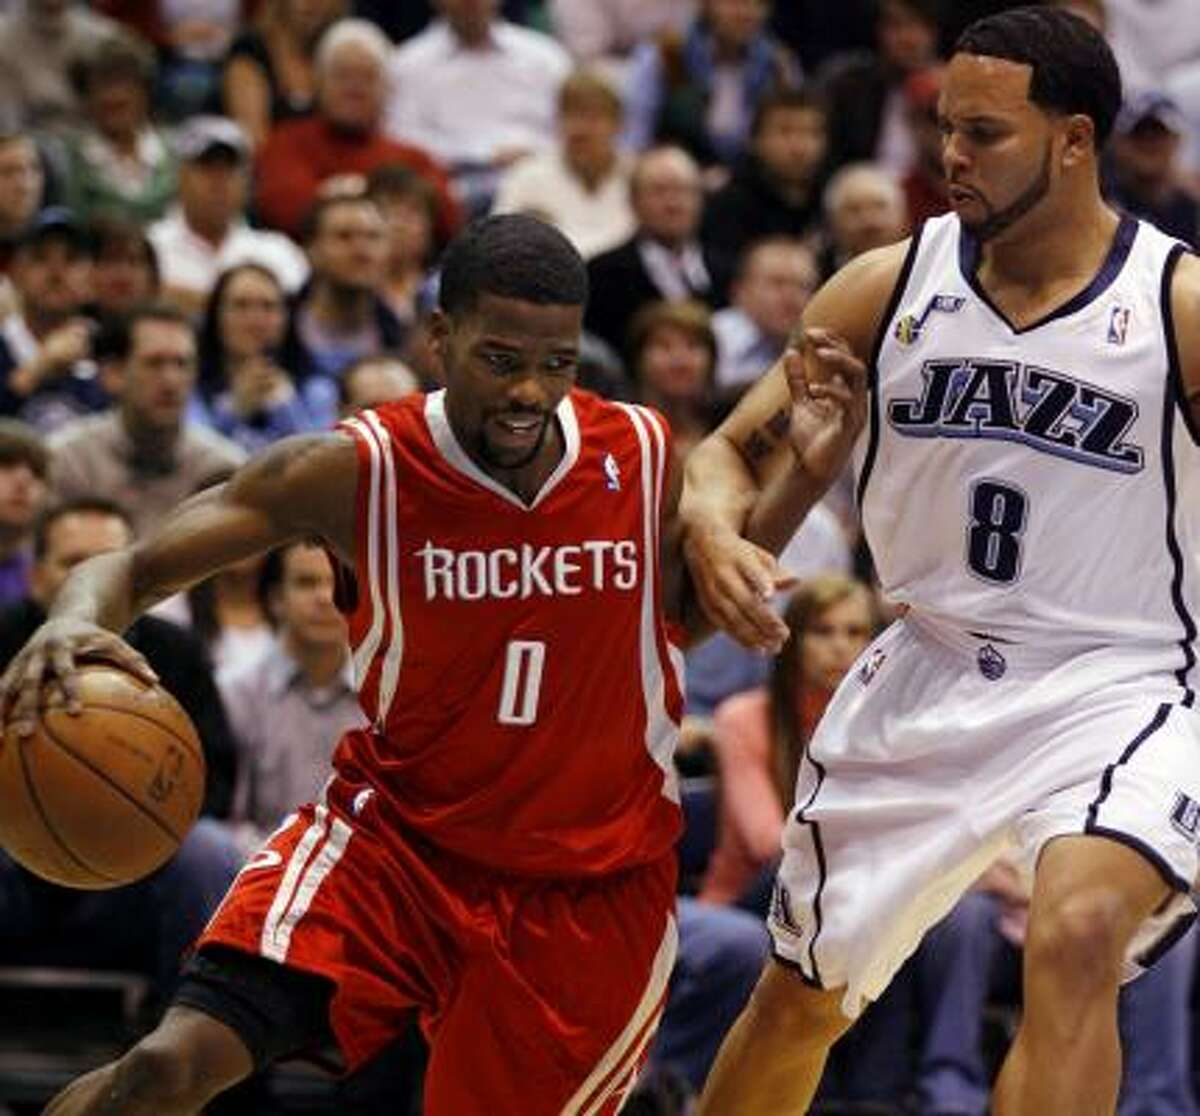 Houston Rockets guard Aaron Brooks drives around Utah Jazz guard Deron Williams during the first half.